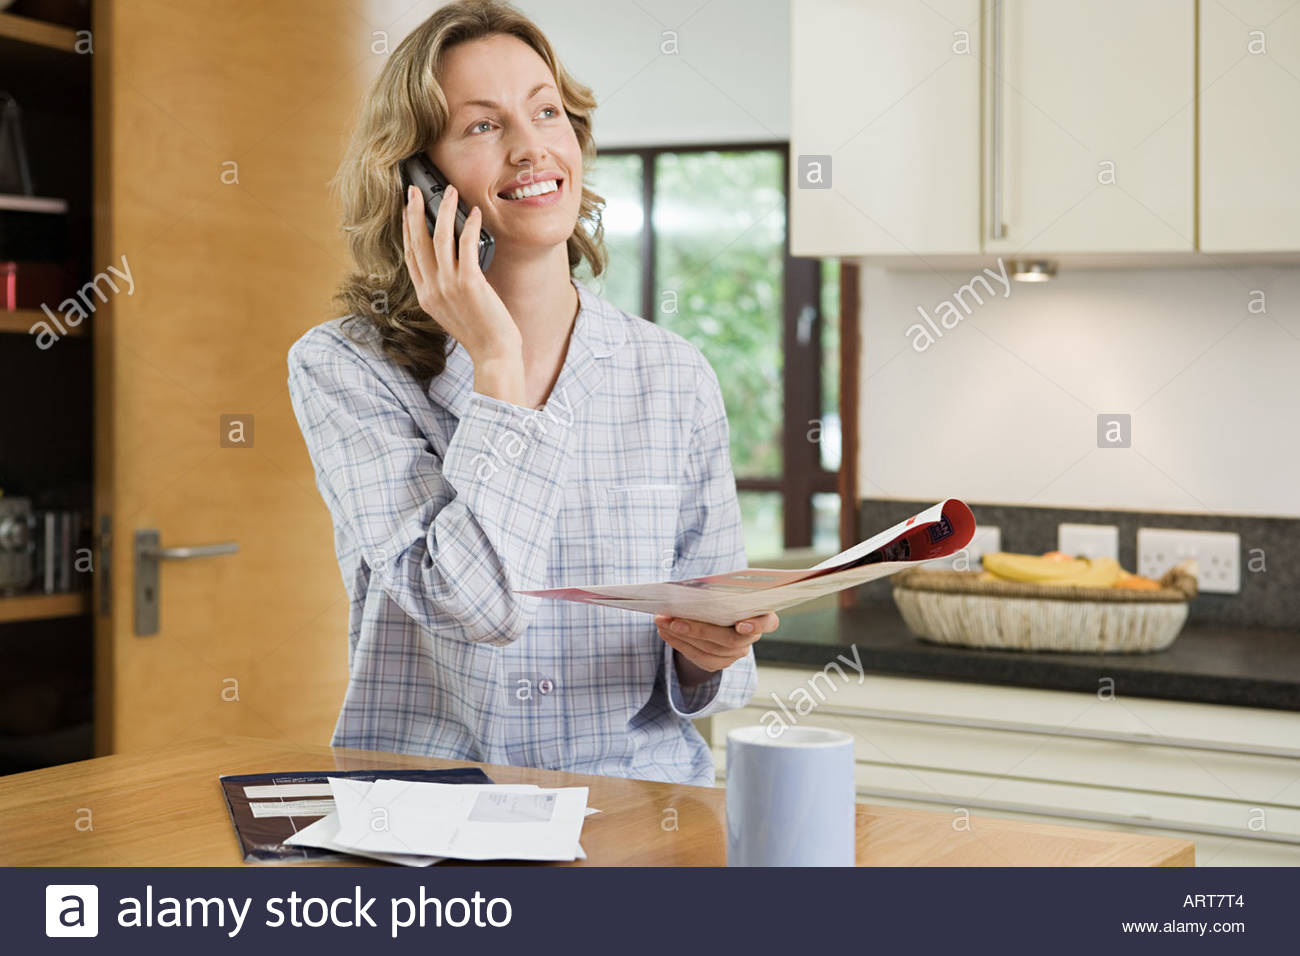 Woman using a cellular telephone in kitchen - Stock Image